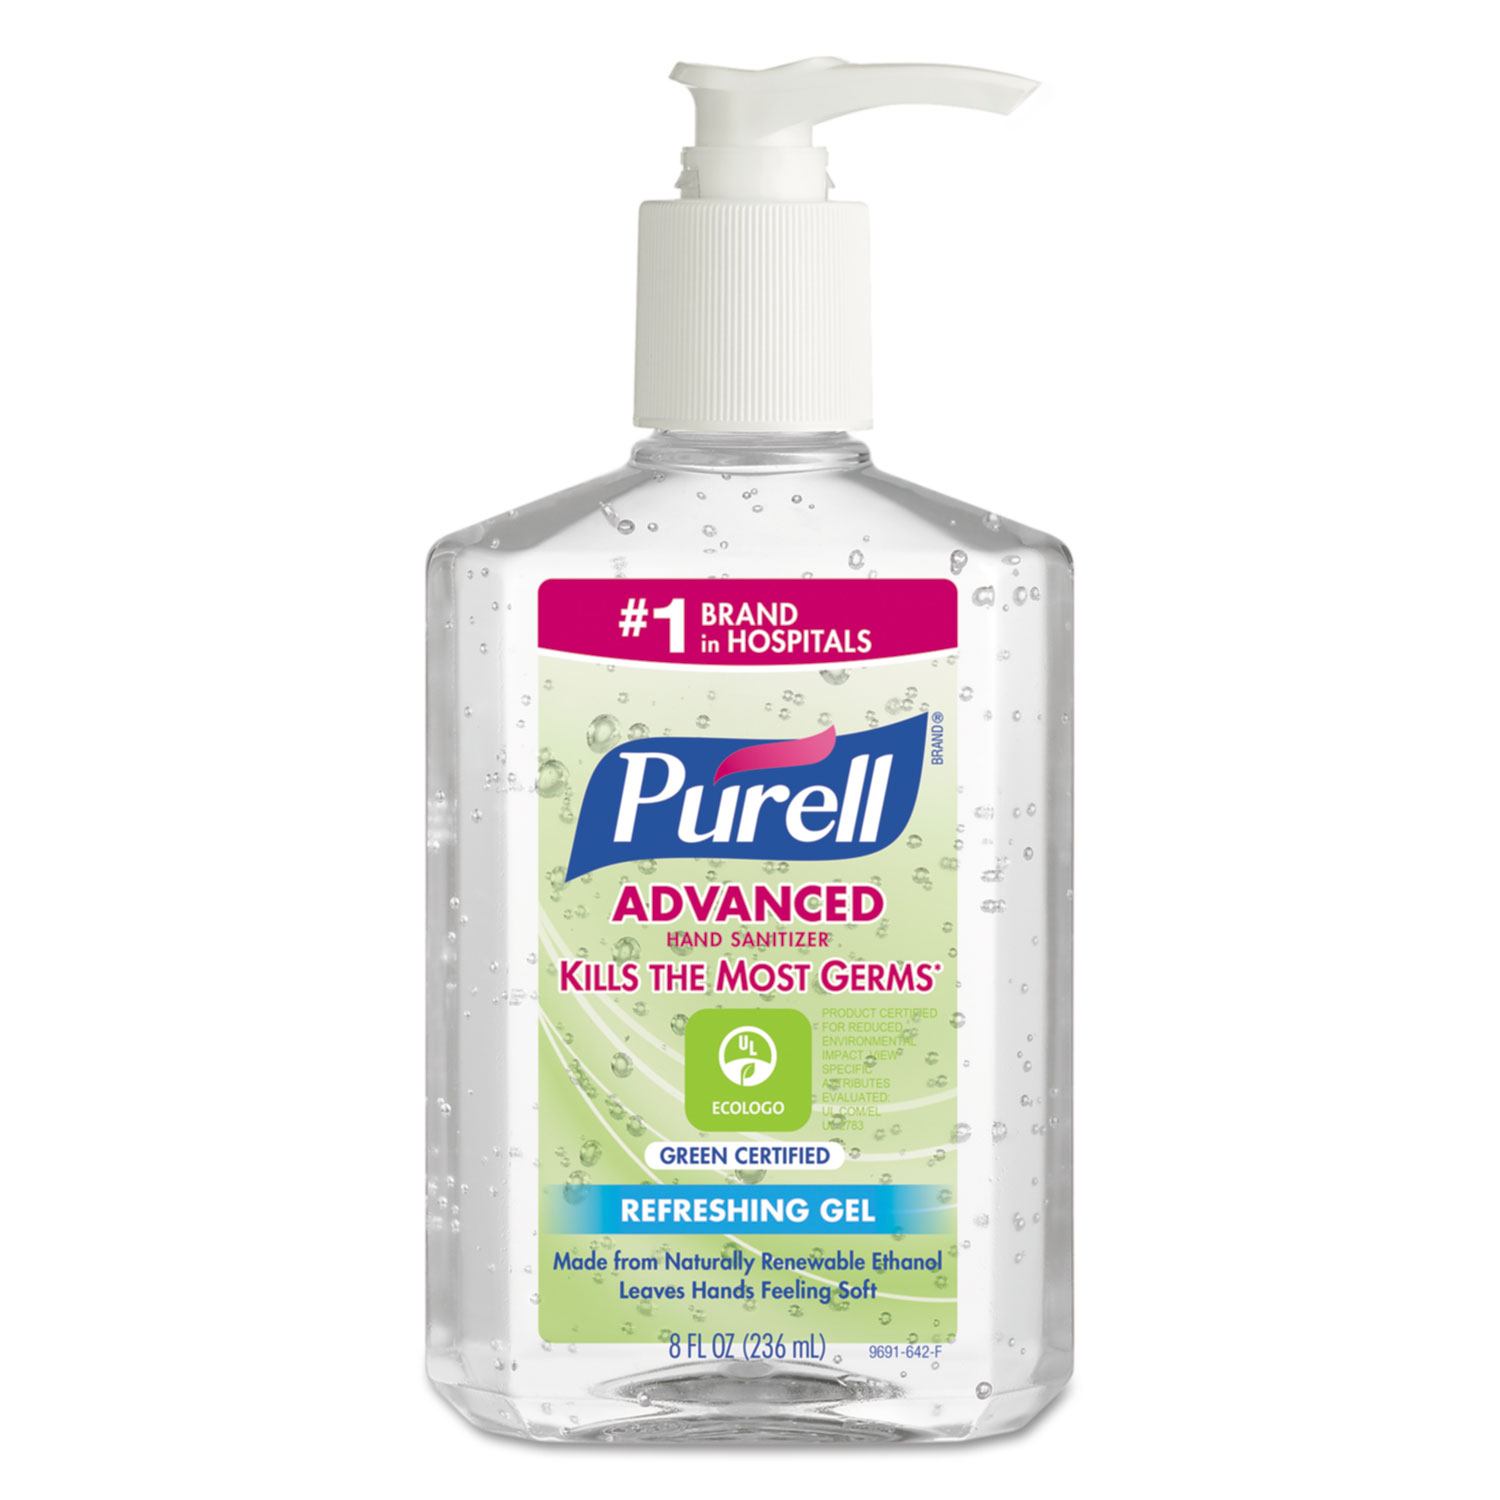 Purell 969112 Green Certified Instant Hand Sanitizer Gel, 8 oz Pump Bottle, Clear